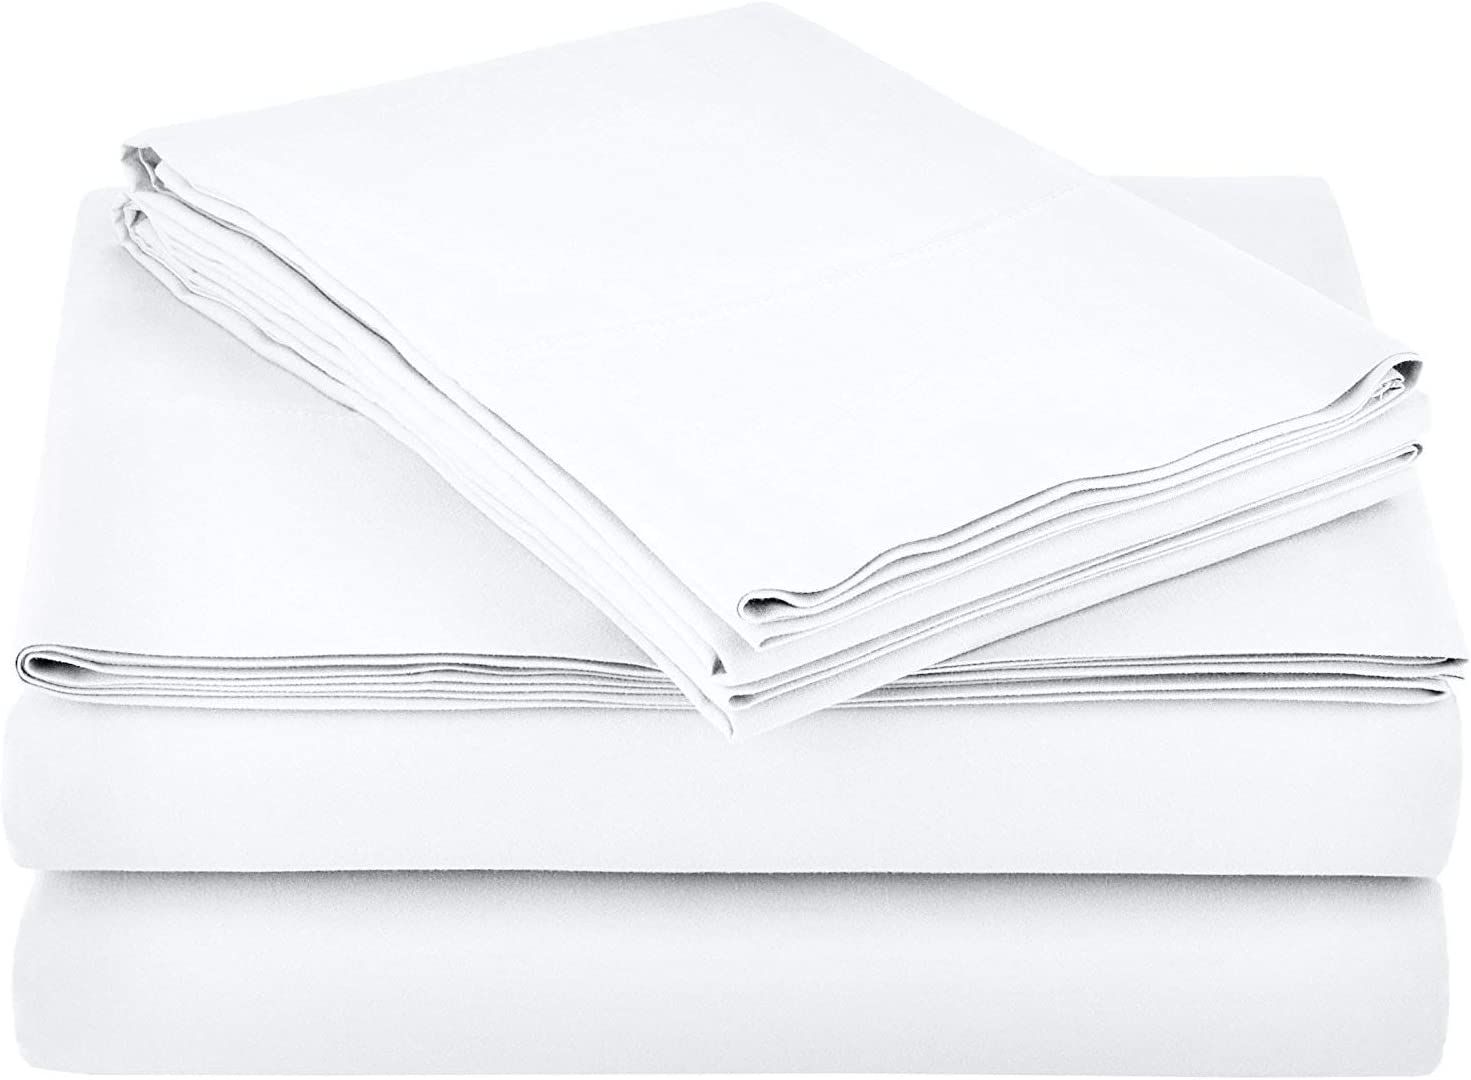 Ras Décor Linen Sheets for Motorhomes & Camper Beds,RV Sheets 72x75 Short King,Fit up to 8 Inch Deep 100% Cotton, White - 4 Piece Sheet Set